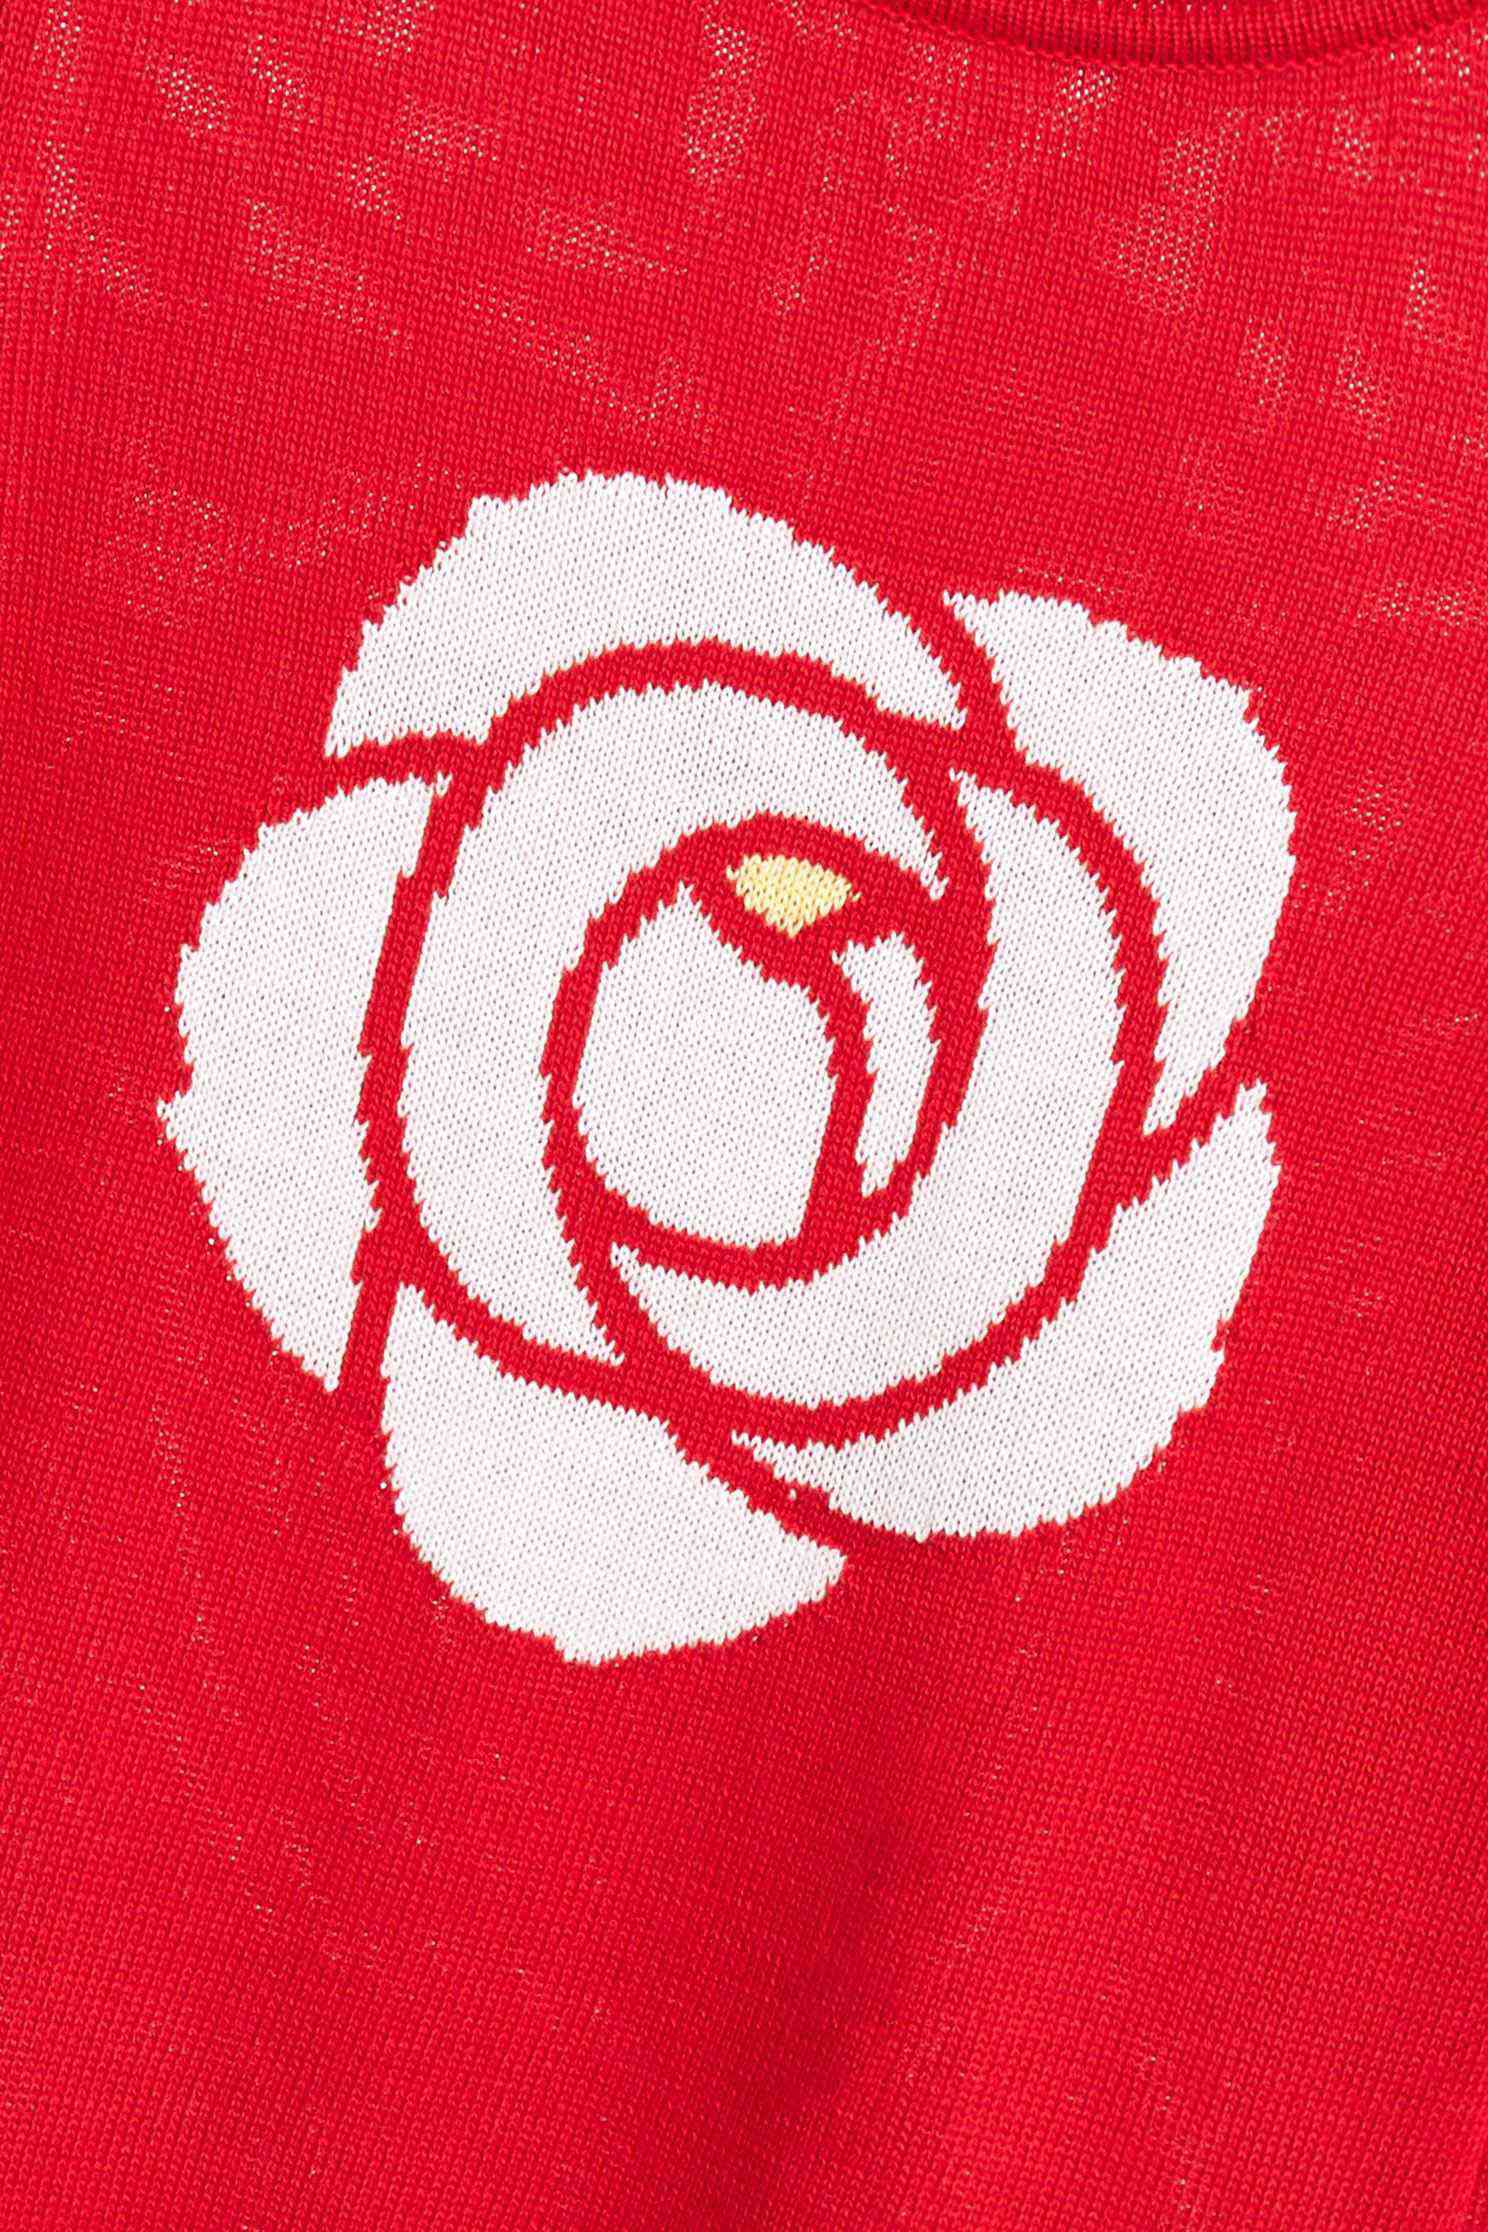 A rose sweater,圓領上衣,knitting,Knitted top,Knitted Top,長袖上衣,黑色上衣